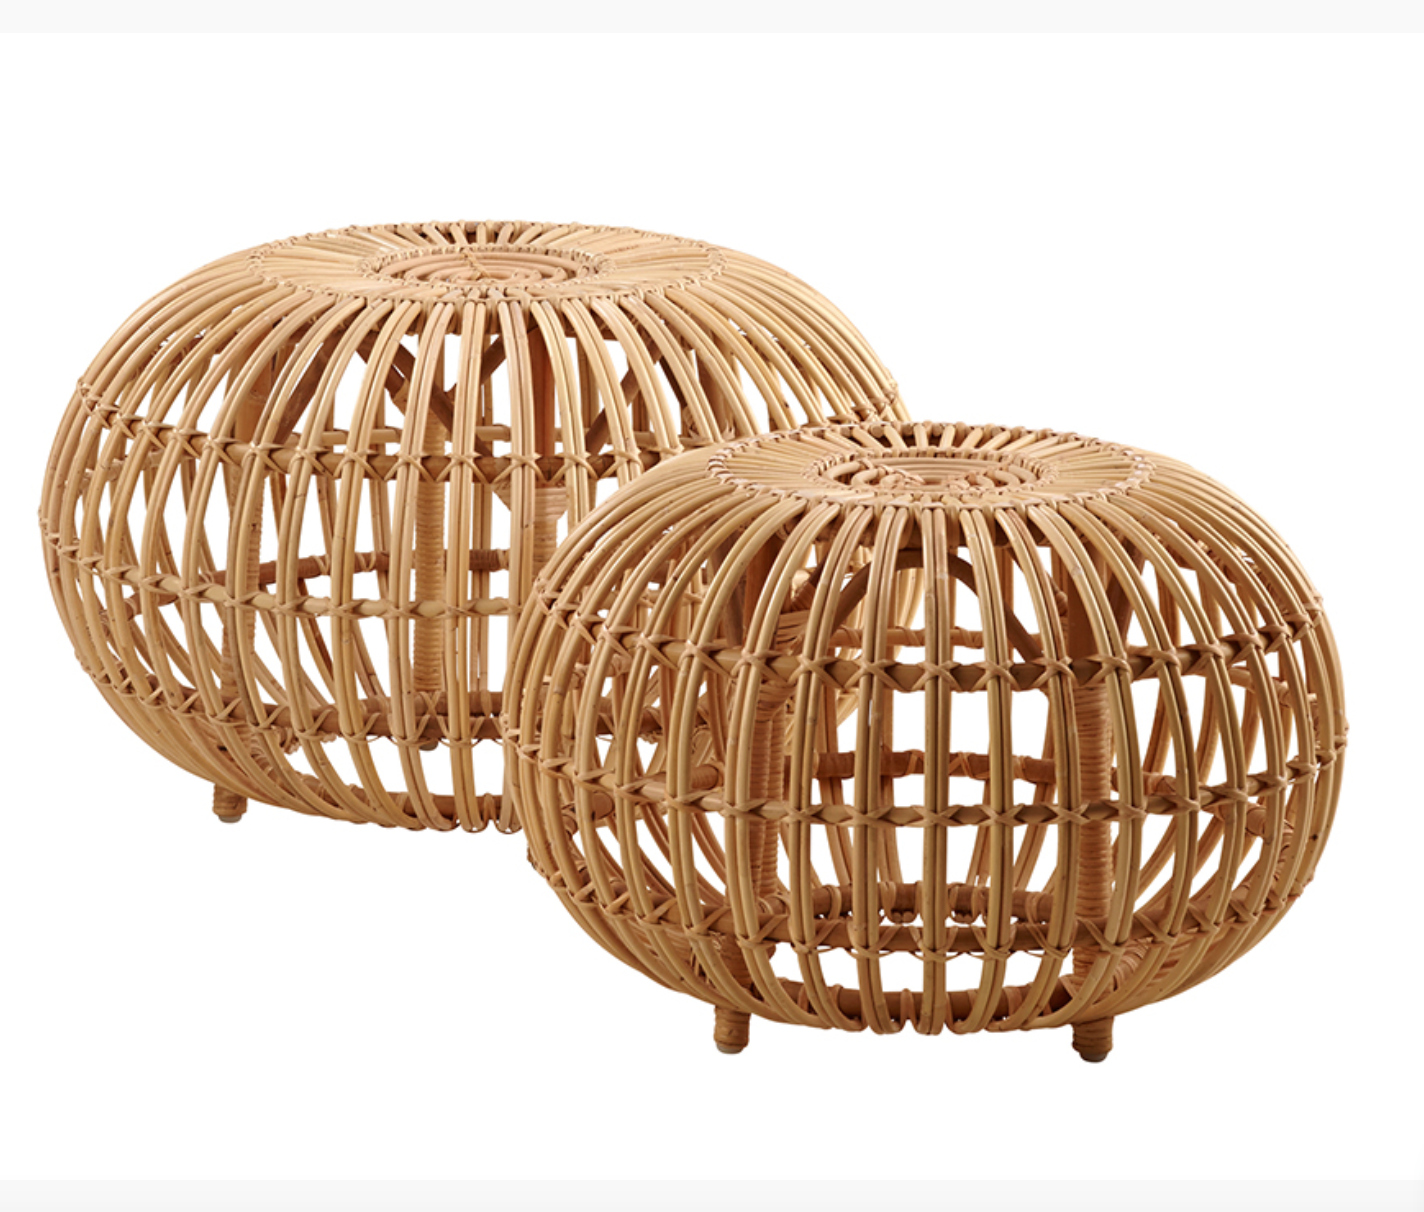 The Franco Albini ottoman in rattan, designed in 1951. Today manufactured by Sika Design, available from Twentytwentyone. £295.